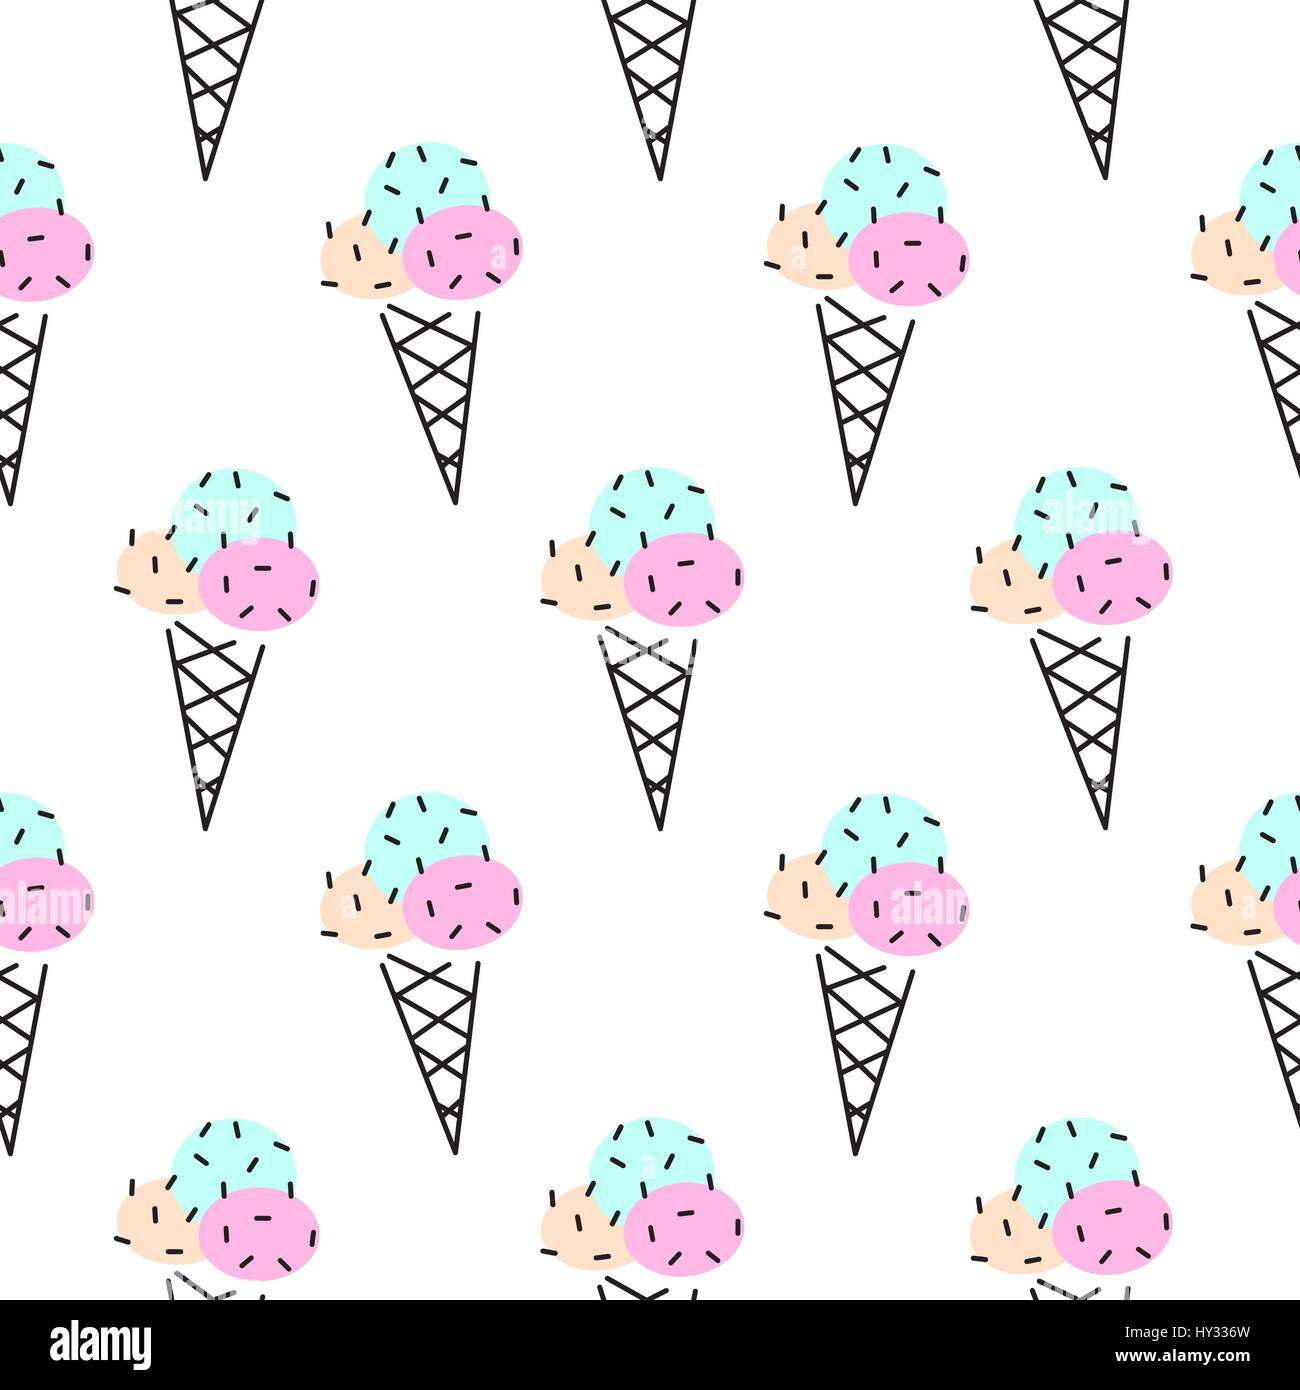 Sweet Ice Cream Flat Colorful Seamless Pattern Vector: Ice Cream Cone Vector Seamless Pattern. Pop Art Pink And